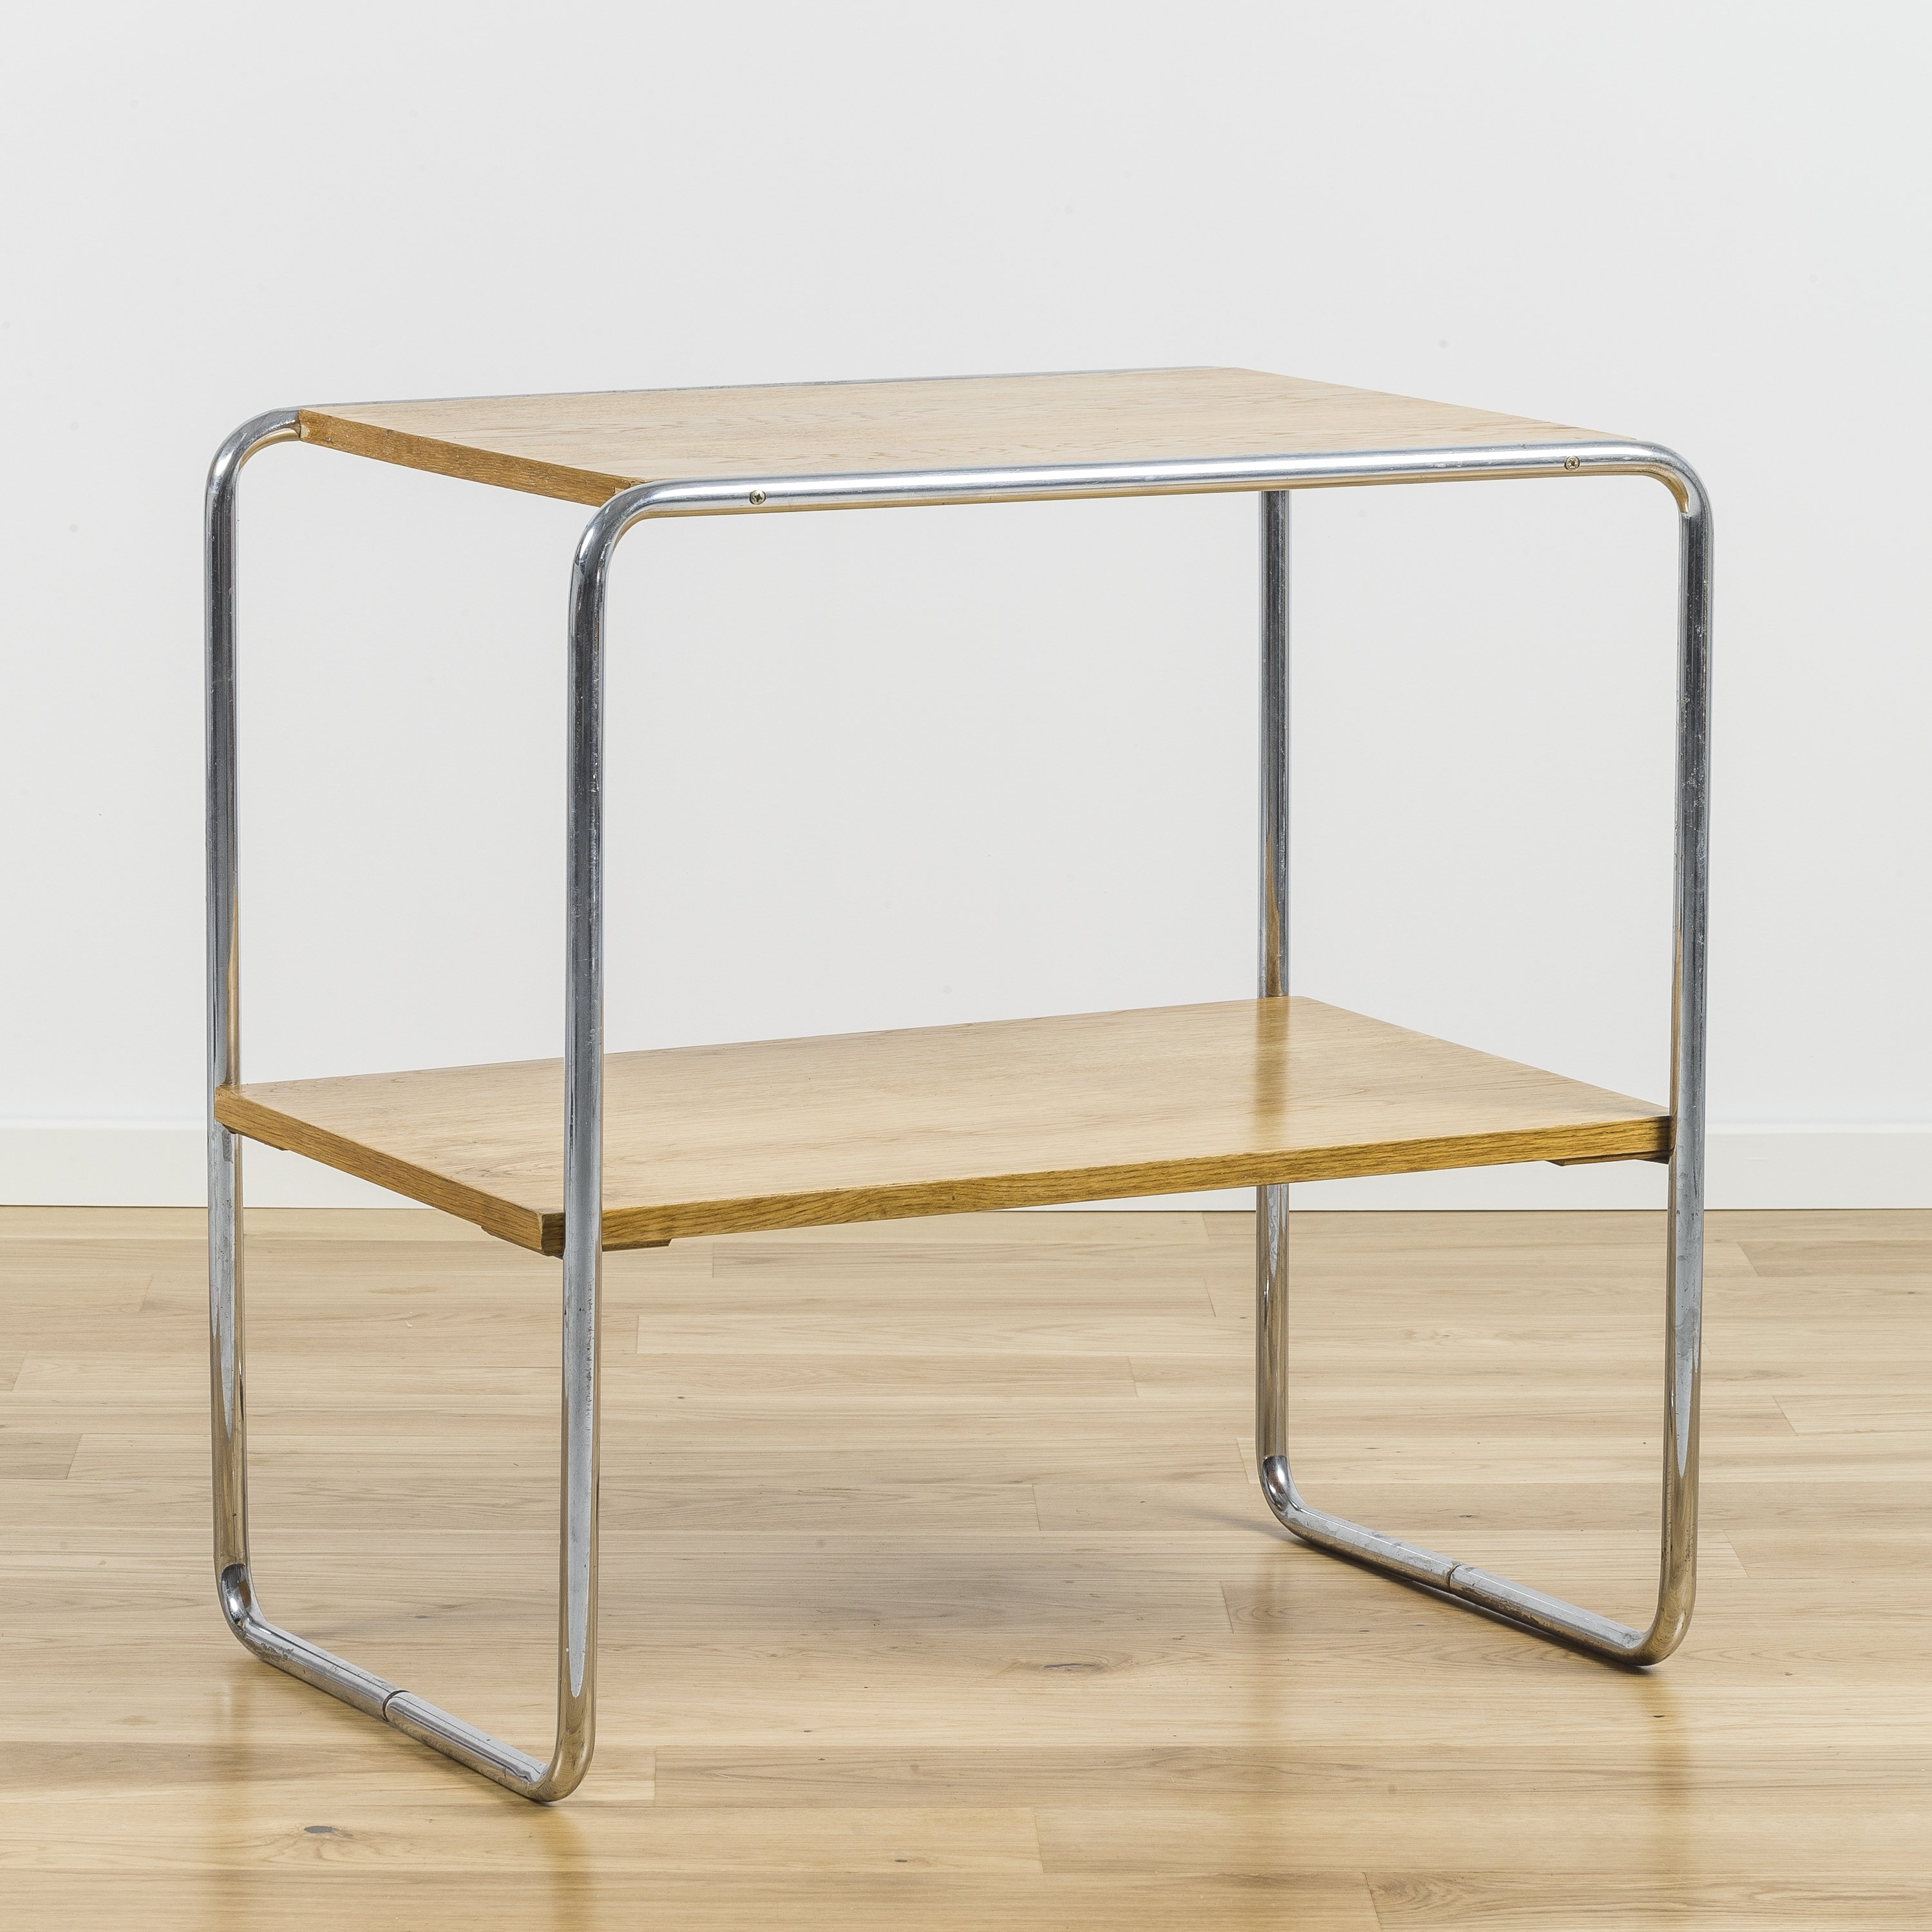 B12 Table By Marcel Breuer For Thonet, 1930